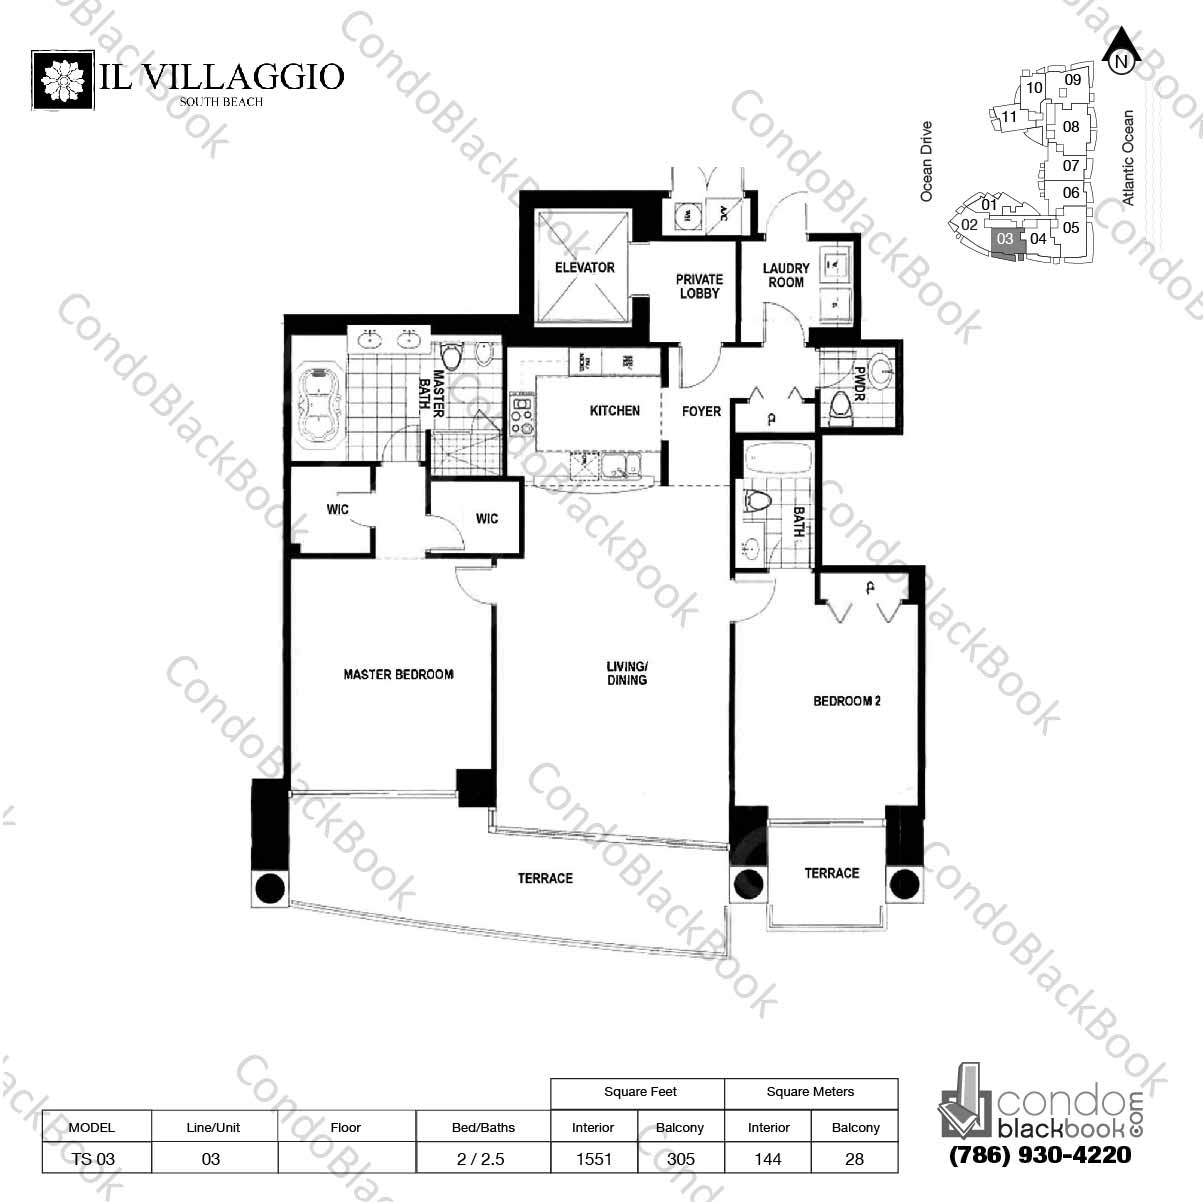 Floor plan for Il Villaggio South Beach Miami Beach, model TS-03, line 03, 2 / 2.5 bedrooms, 1551 sq ft